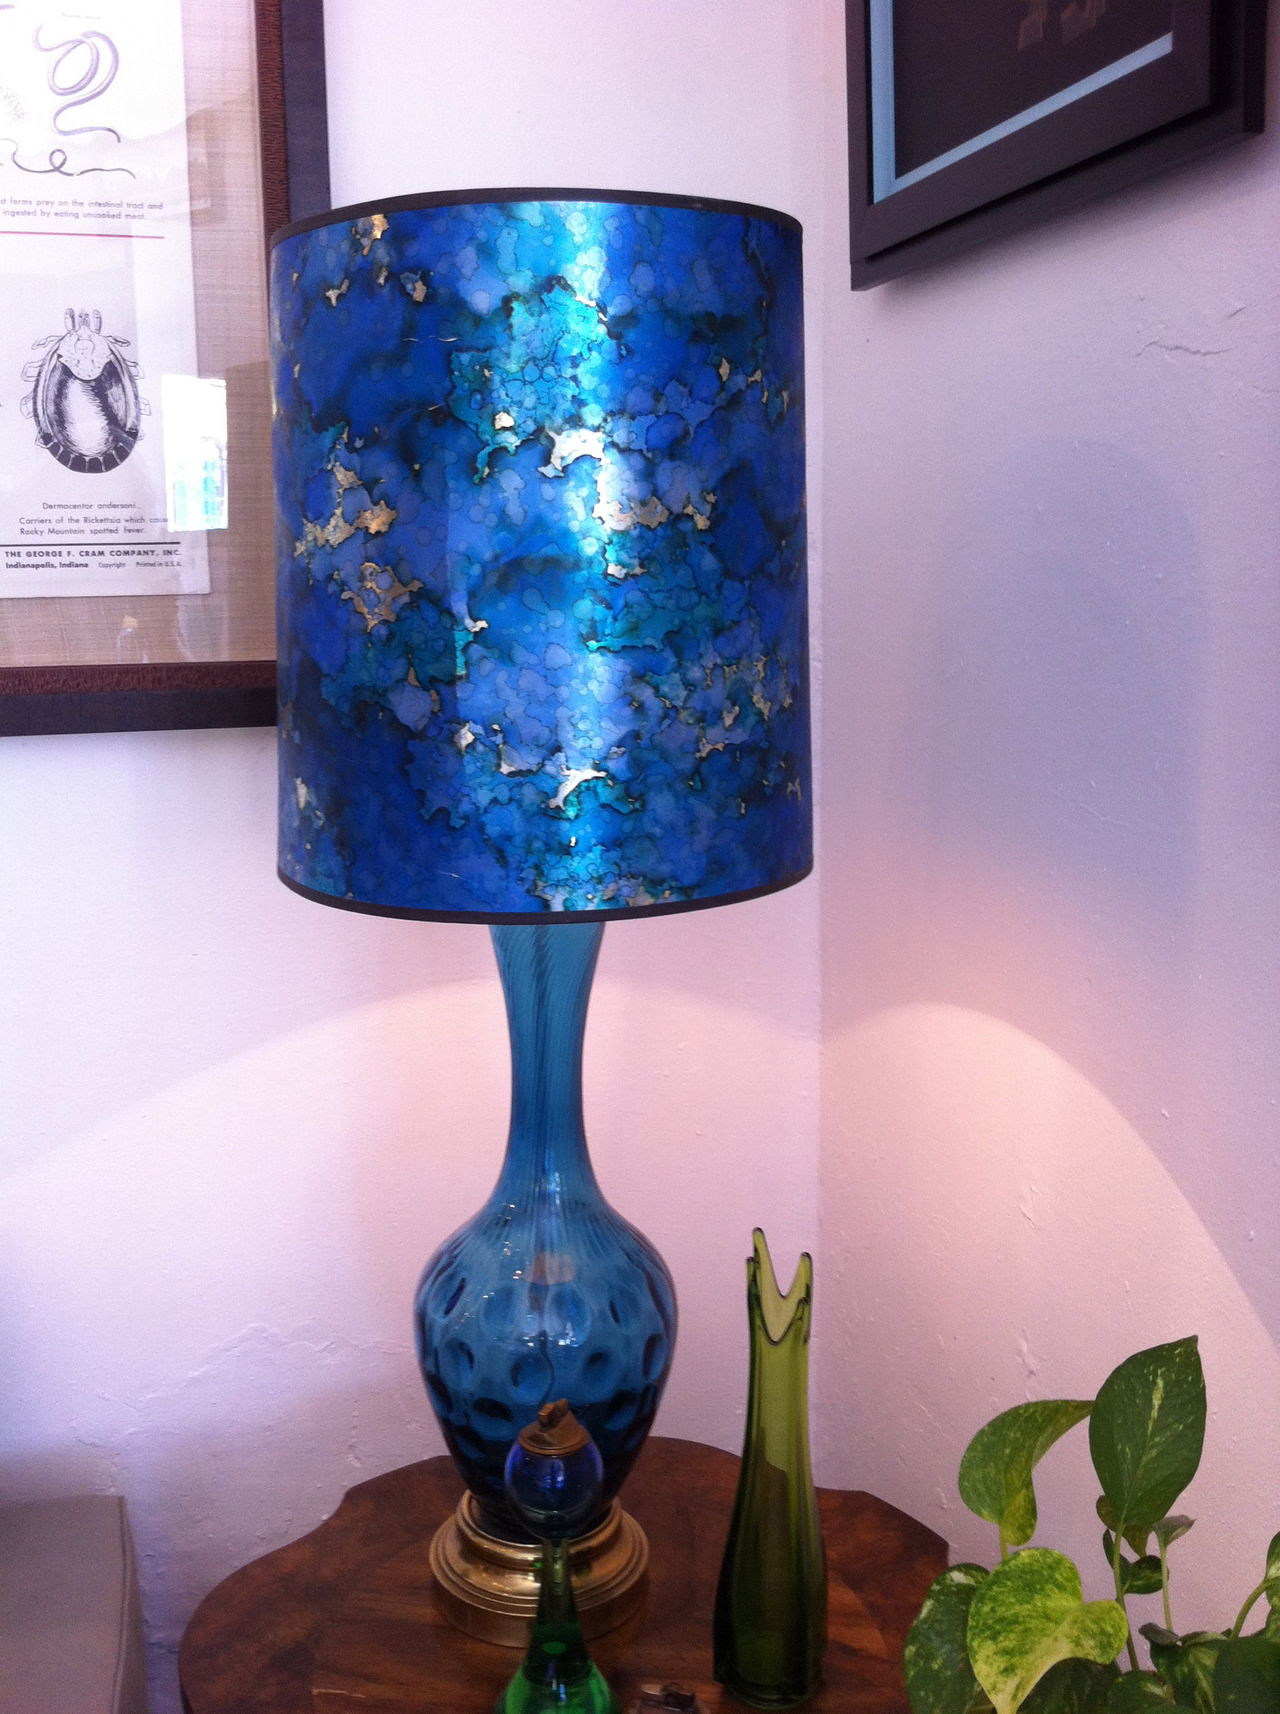 This great lamp, along with many other fabulous things, are now available on my etsy site!  Much more to come in the next days, too!  http://www.etsy.com/shop/calamitydane